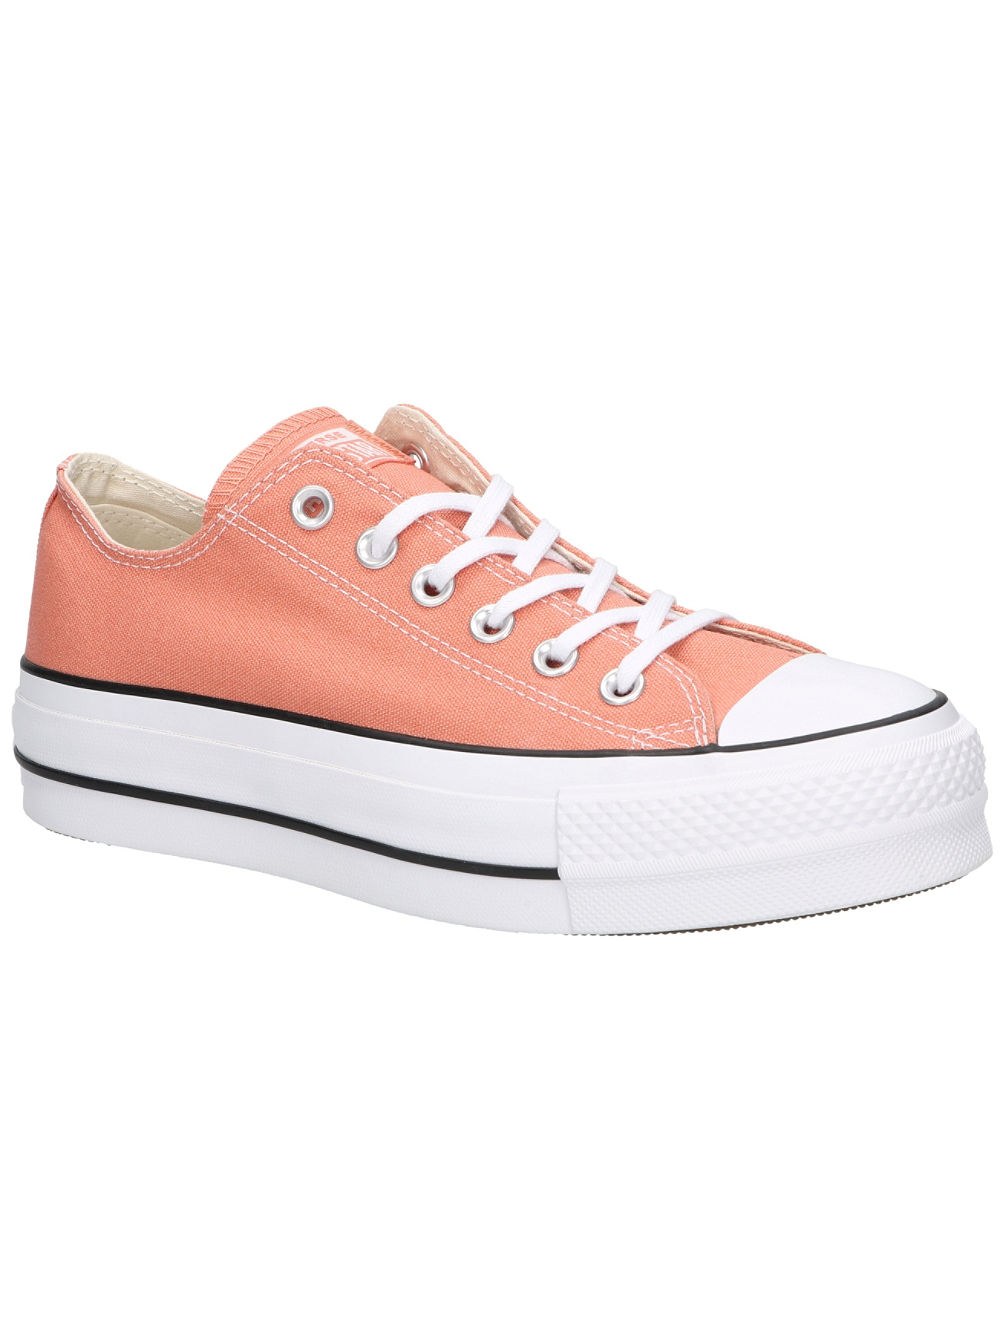 d2f398acf027e3 Buy Converse Chuck Taylor All Star Lift OX Sneakers Sneak online at ...